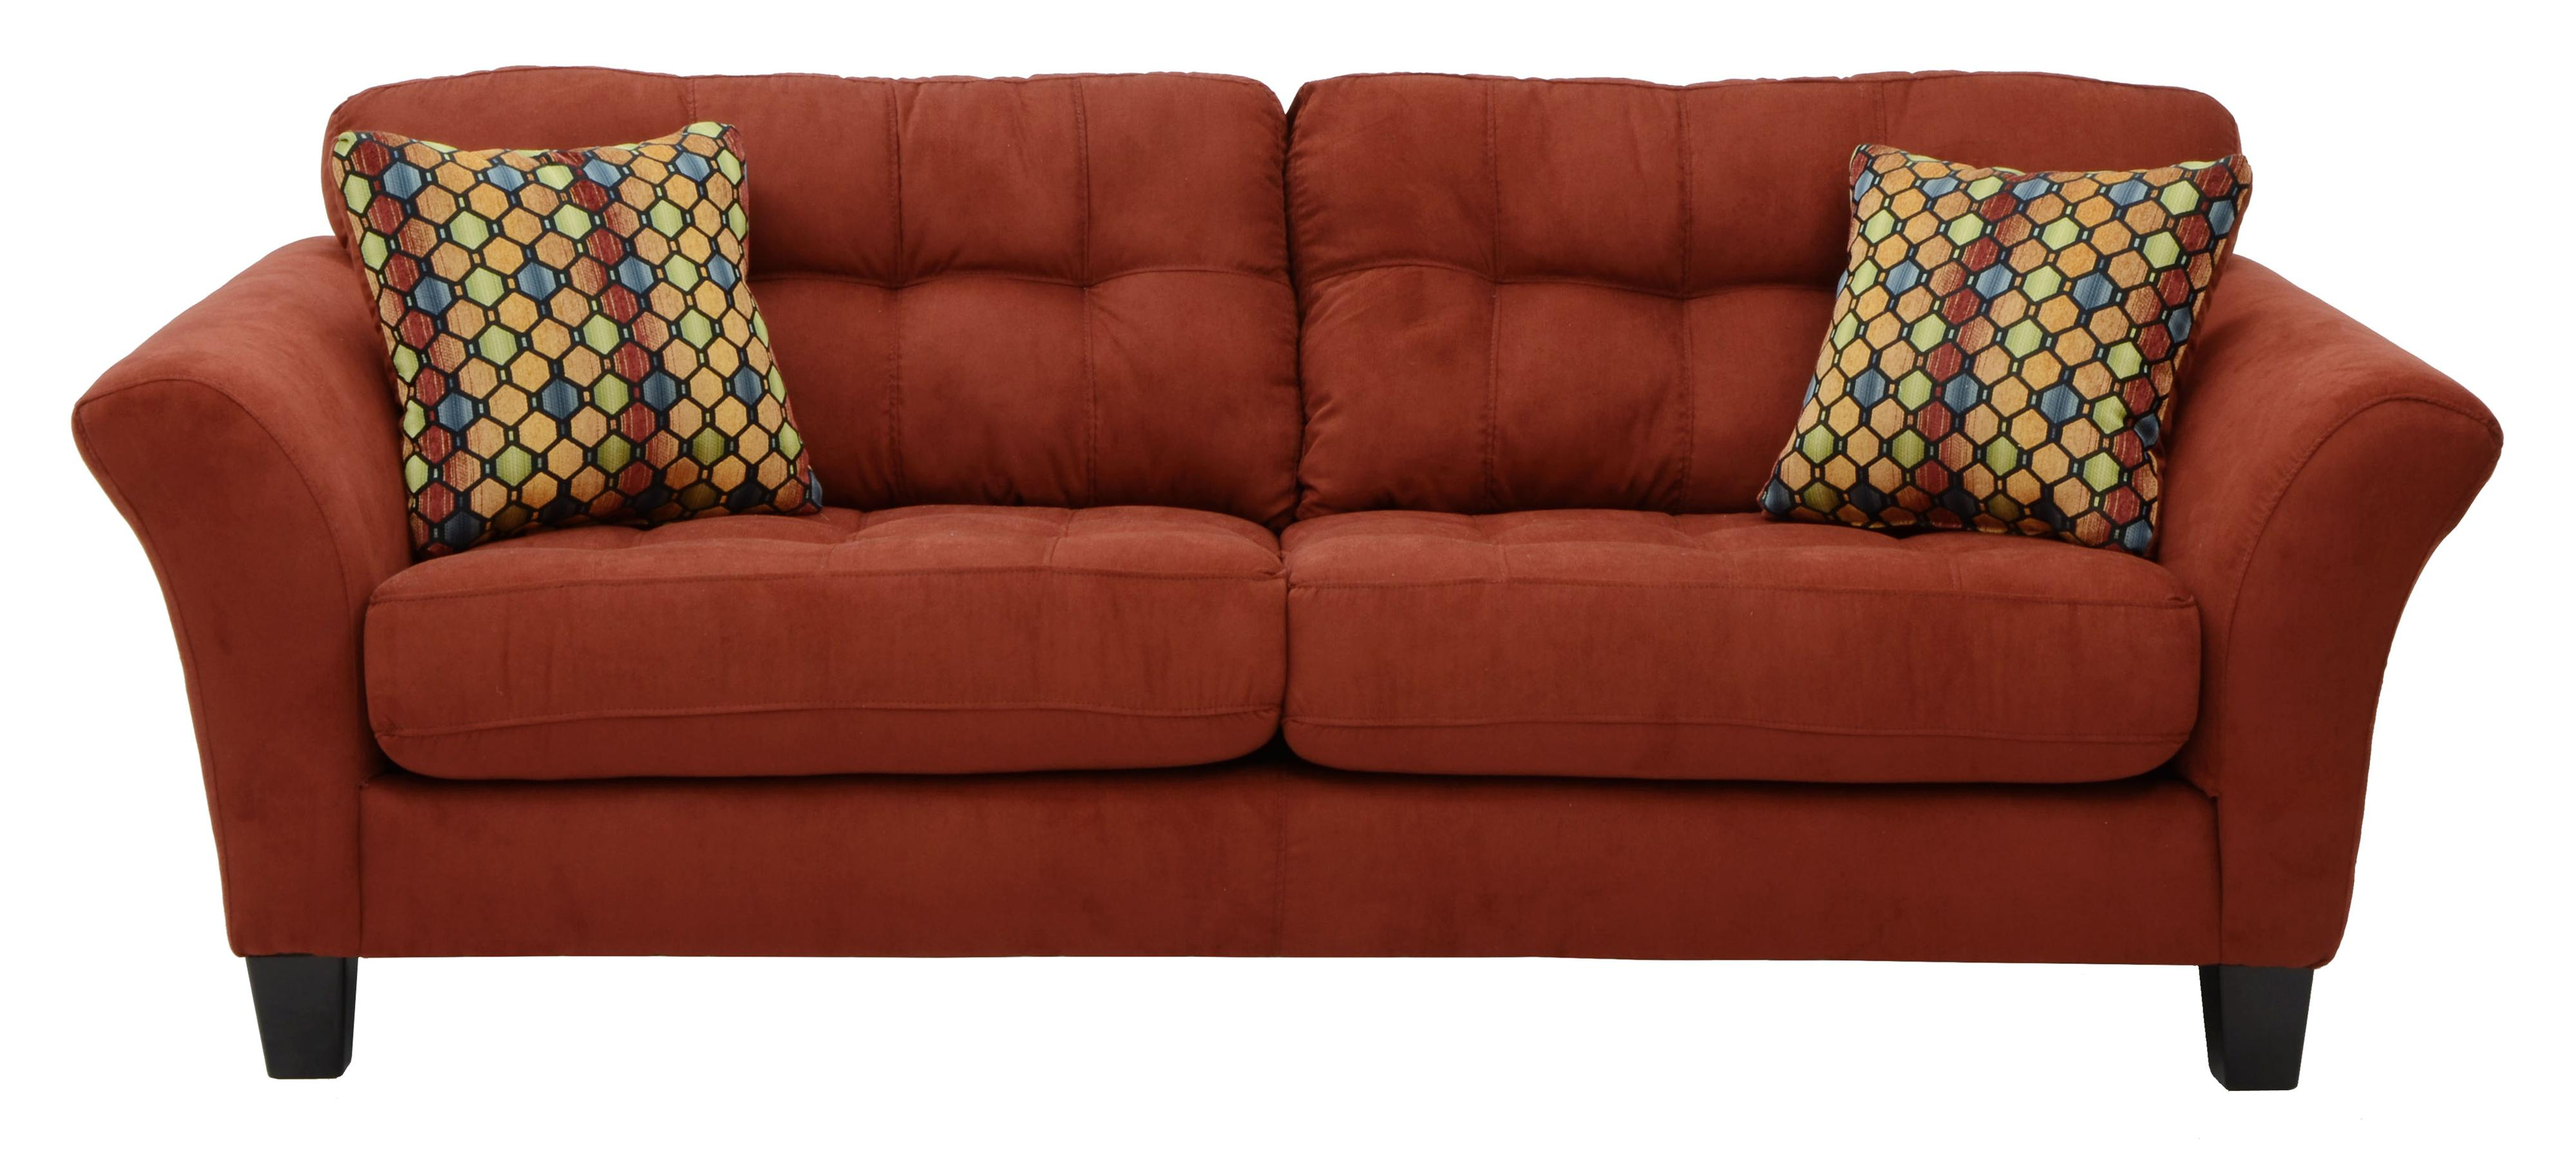 Sofa with 2 Seats and Tufted Back Cushions by Jackson Furniture